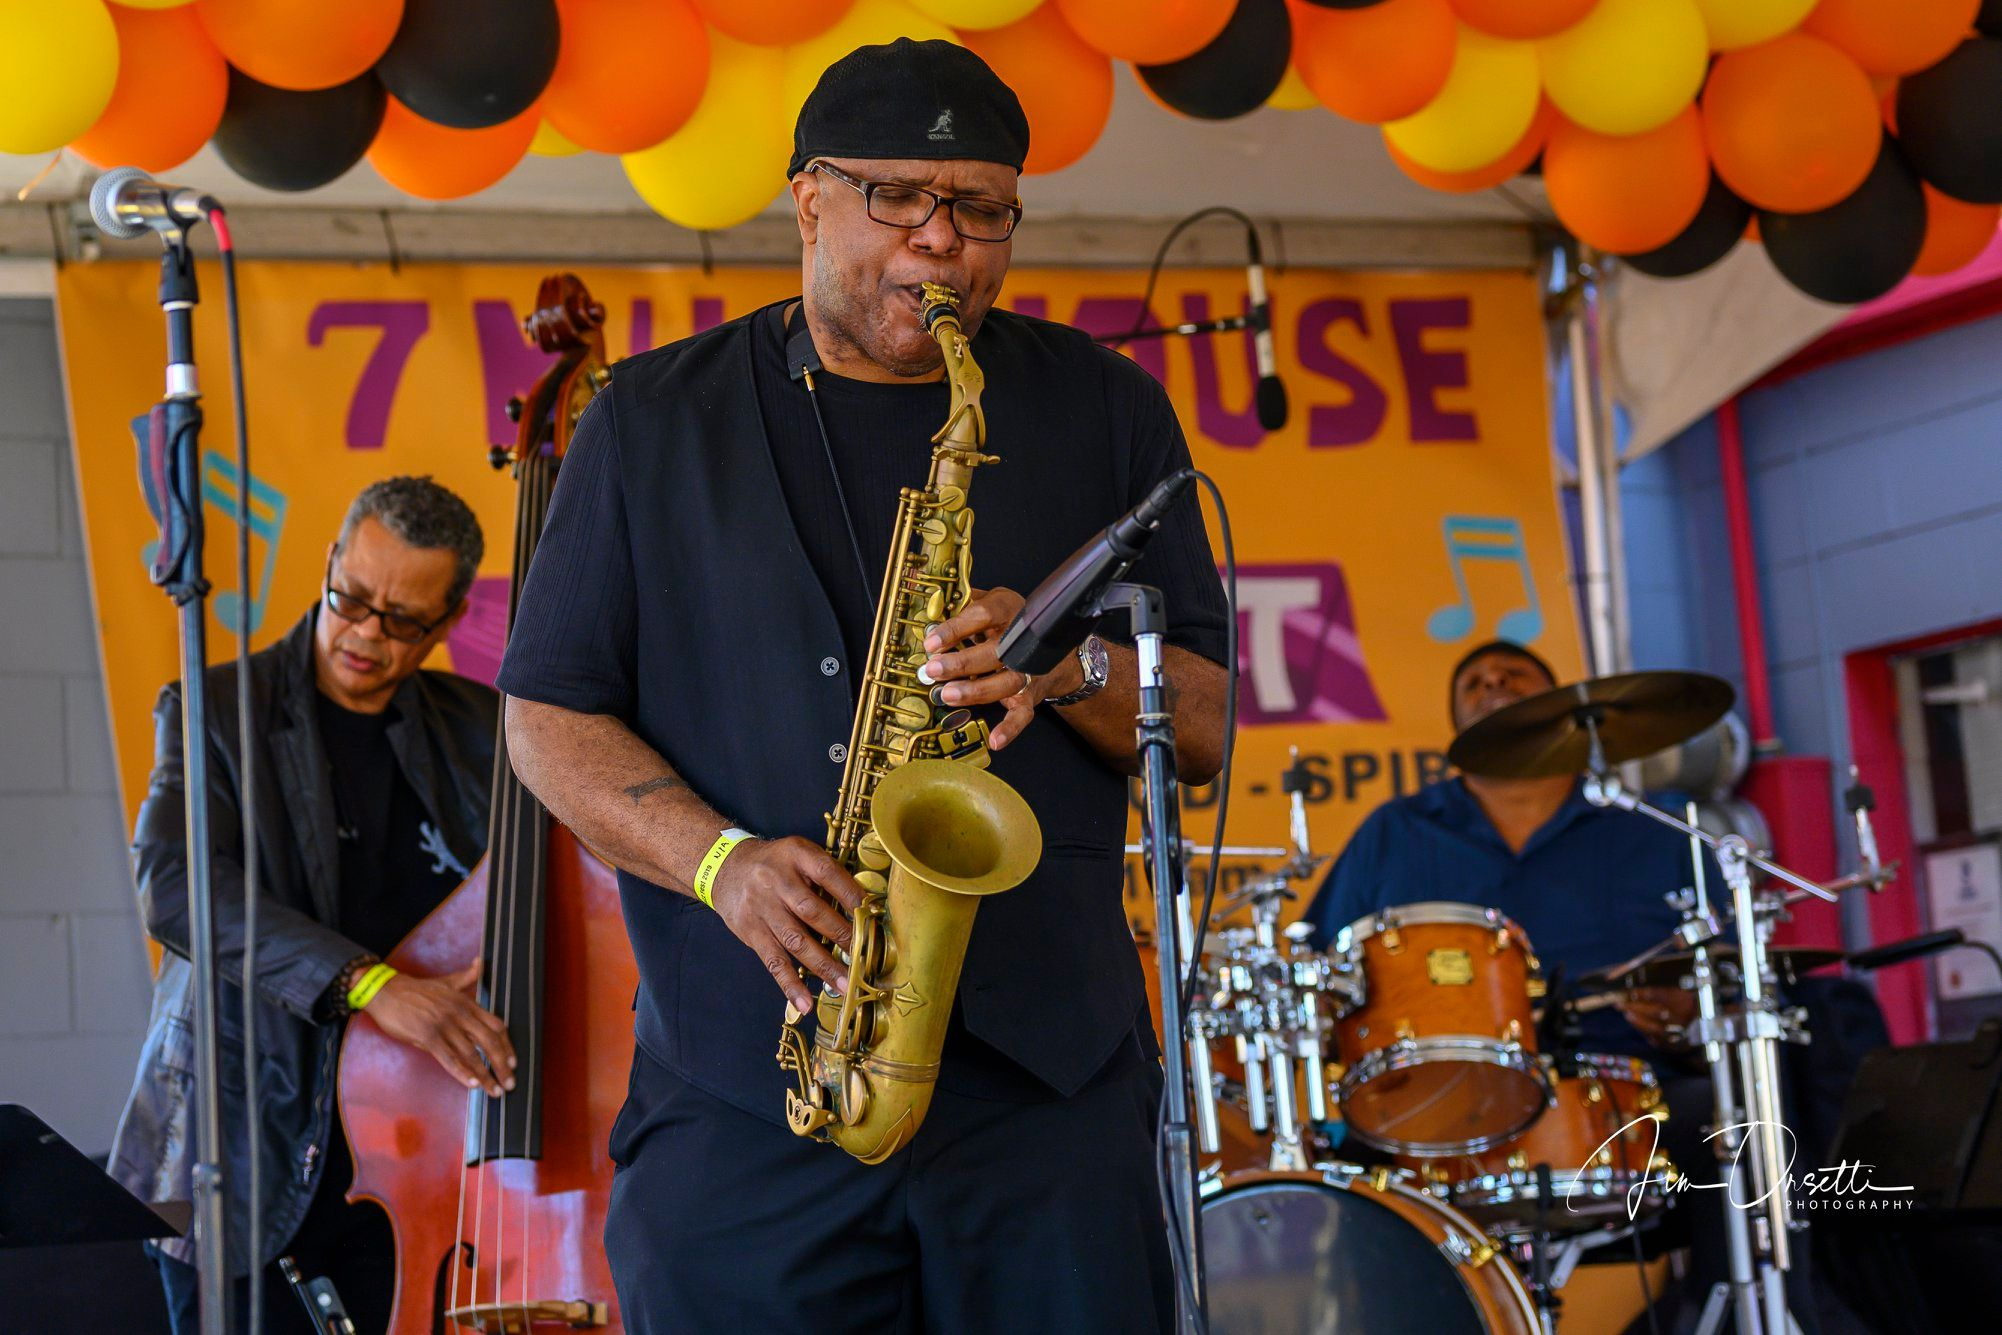 Charles McNeal at the 2nd Annual 7 Mile House Jazz Fest 2019